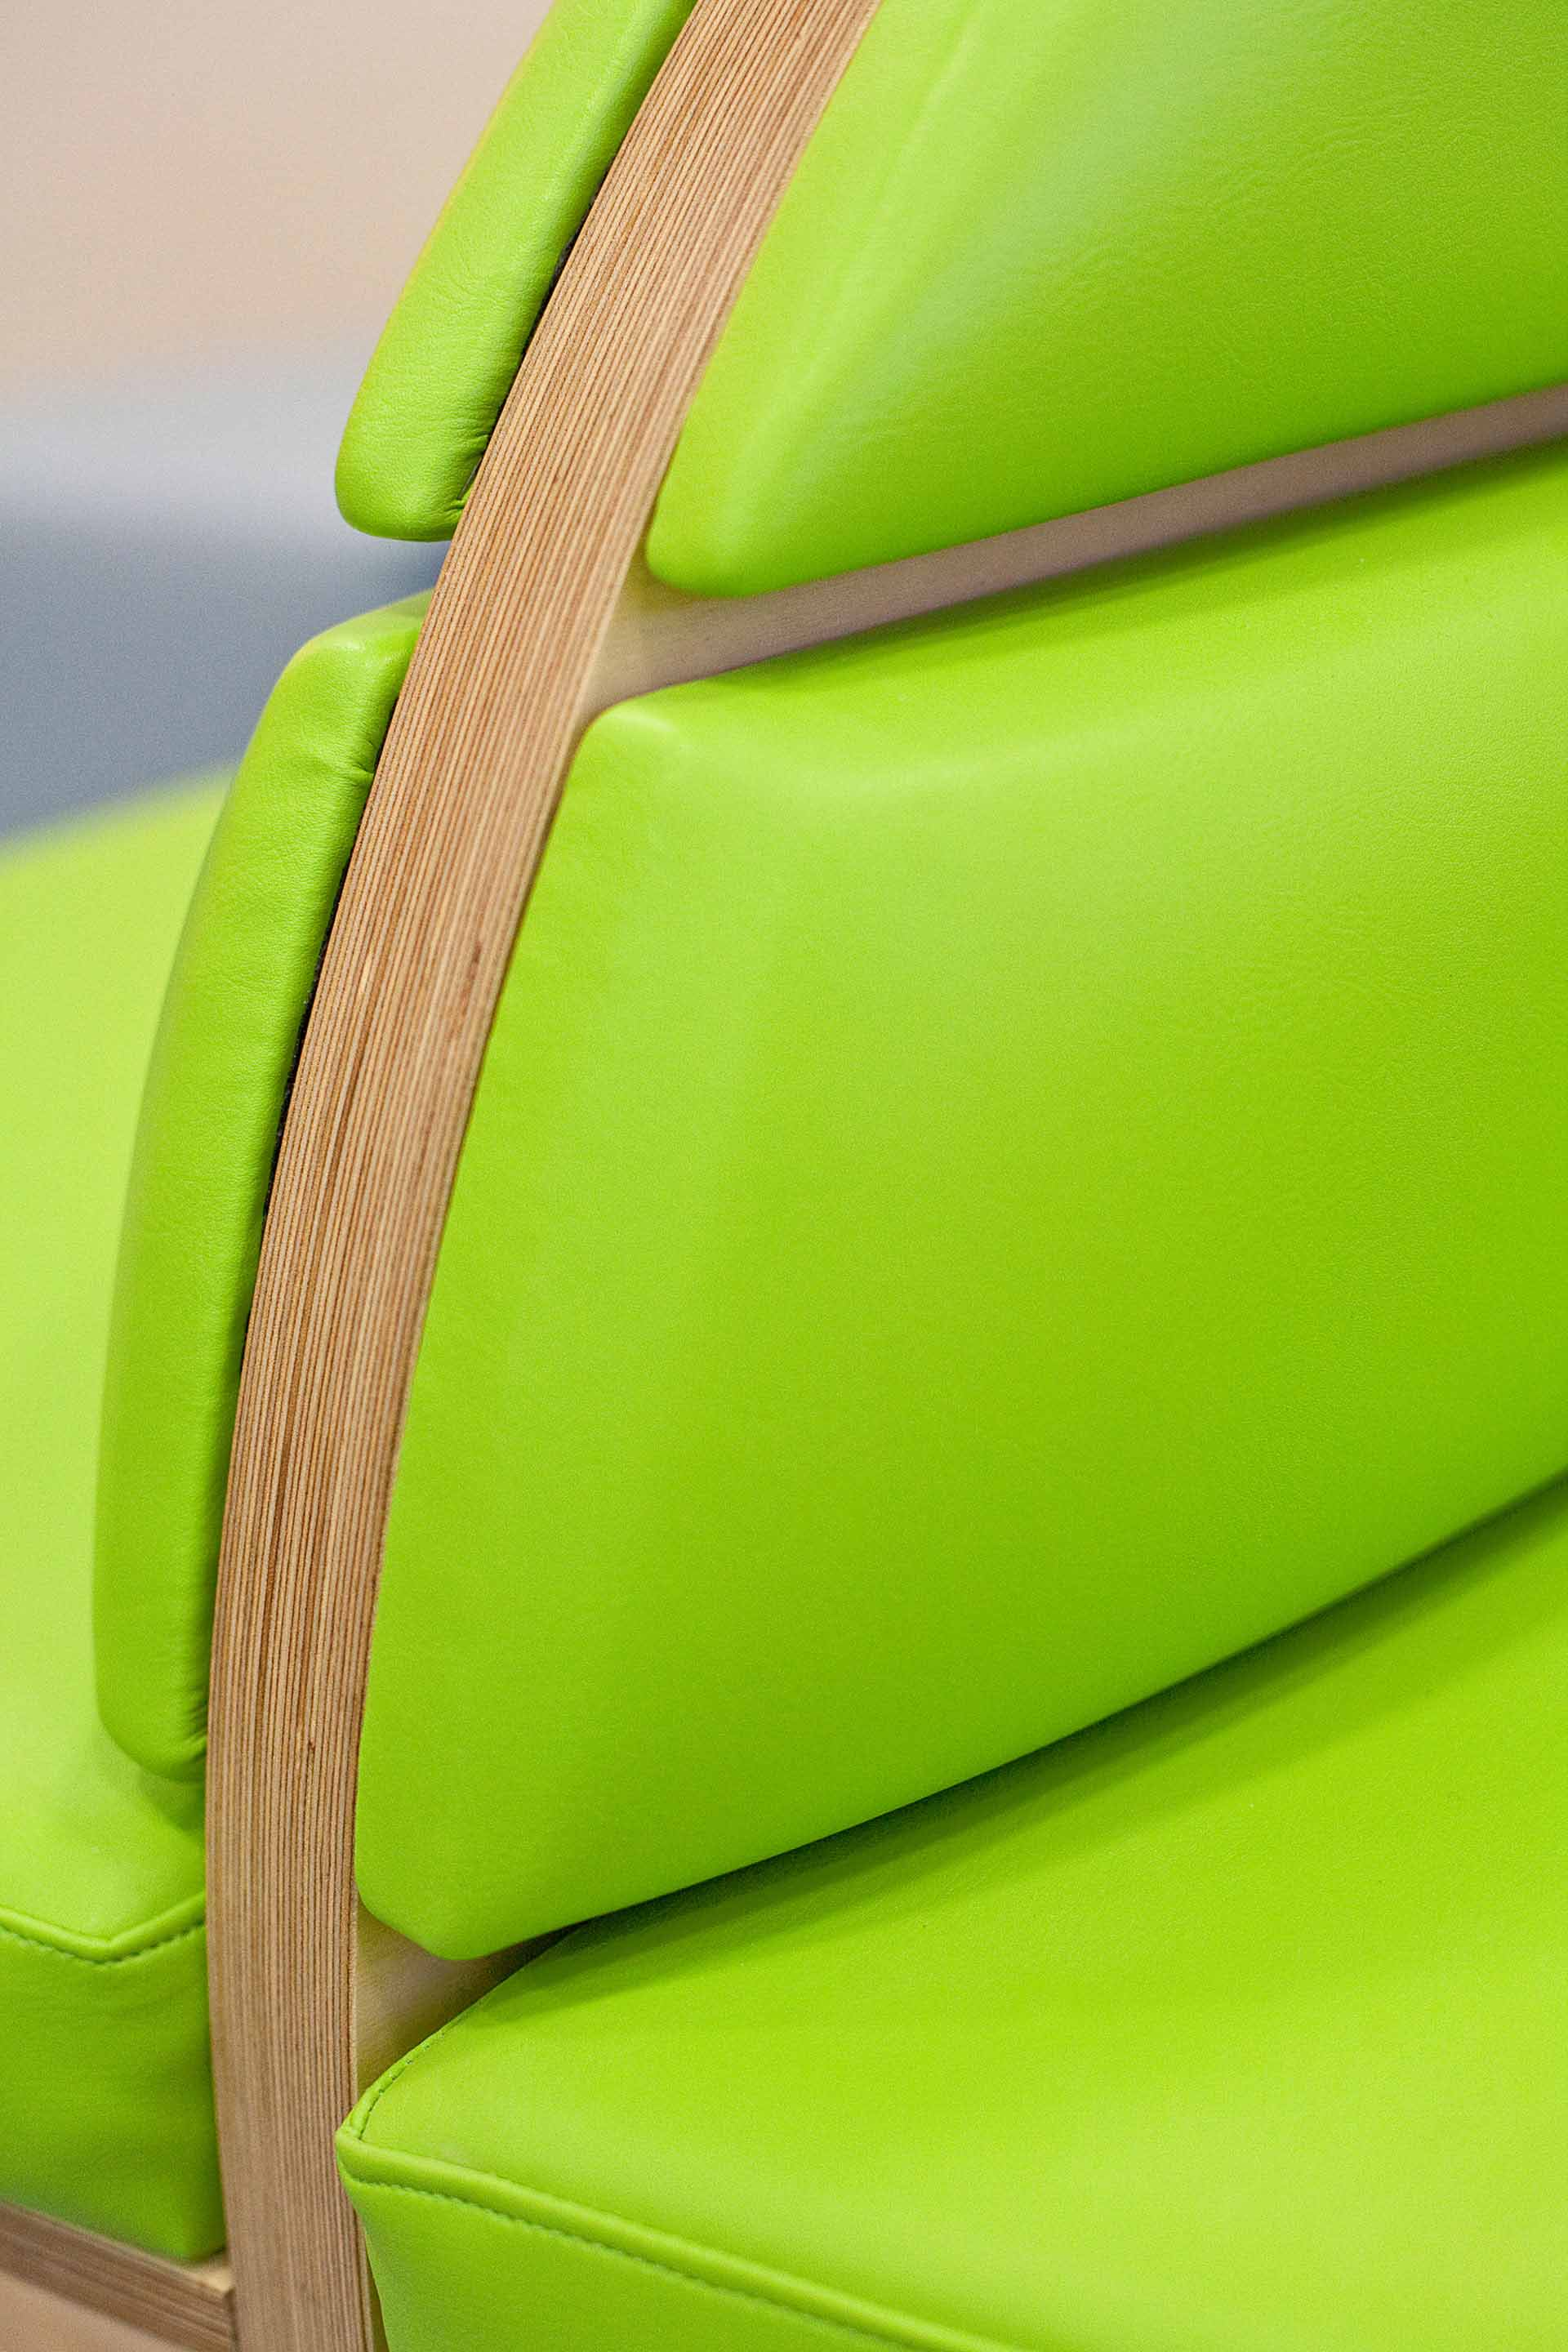 Infection control upholstery for bespoke joinery at Salisbury District Hospital